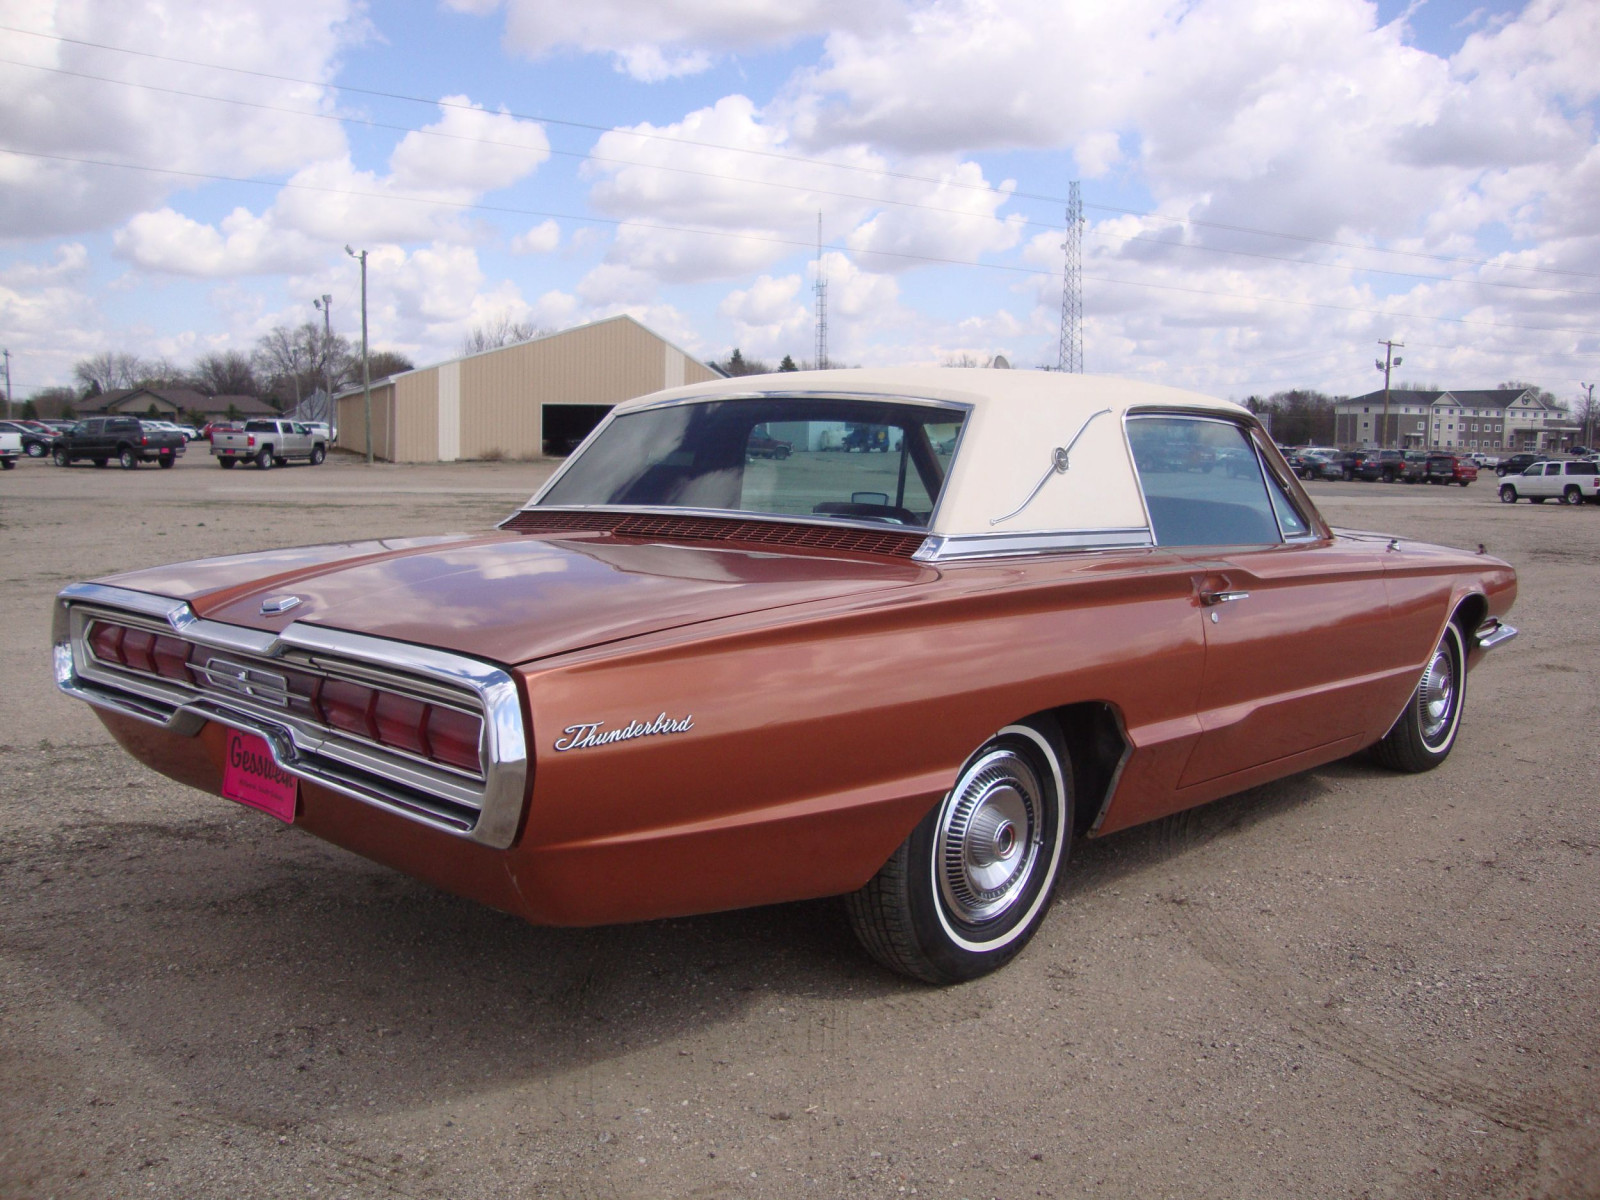 1966 Ford Thunderbird Coupe - Image 7